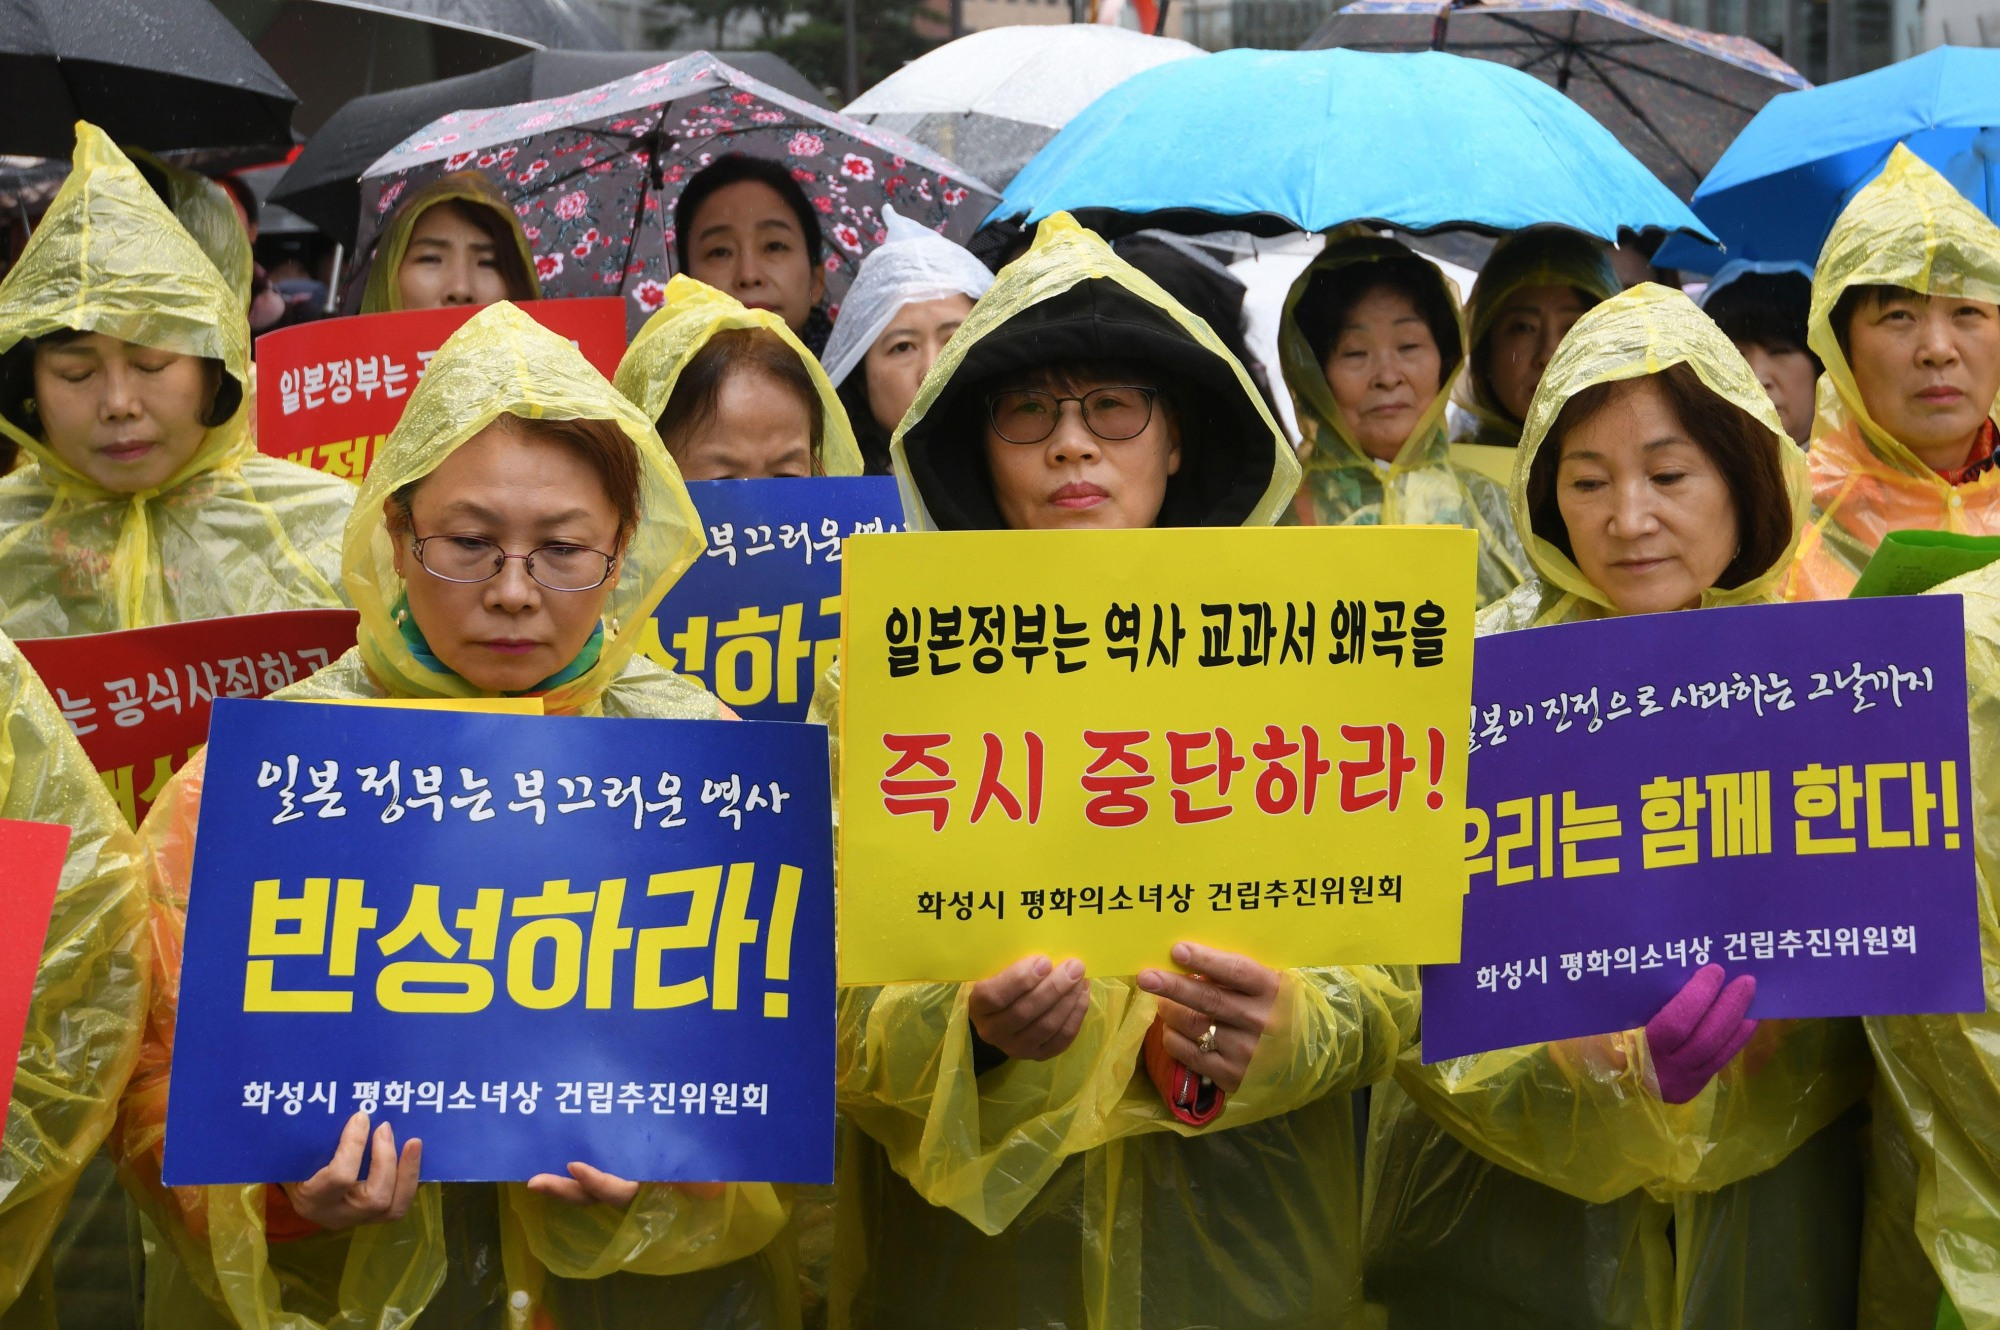 South Korean protesters take part in a weekly anti-Japanese demonstration supporting 'comfort women' near the Japanese Embassy in Seoul on April 10. Bilateral relations have grown increasingly chilly in recent months.   AFP-JIJI